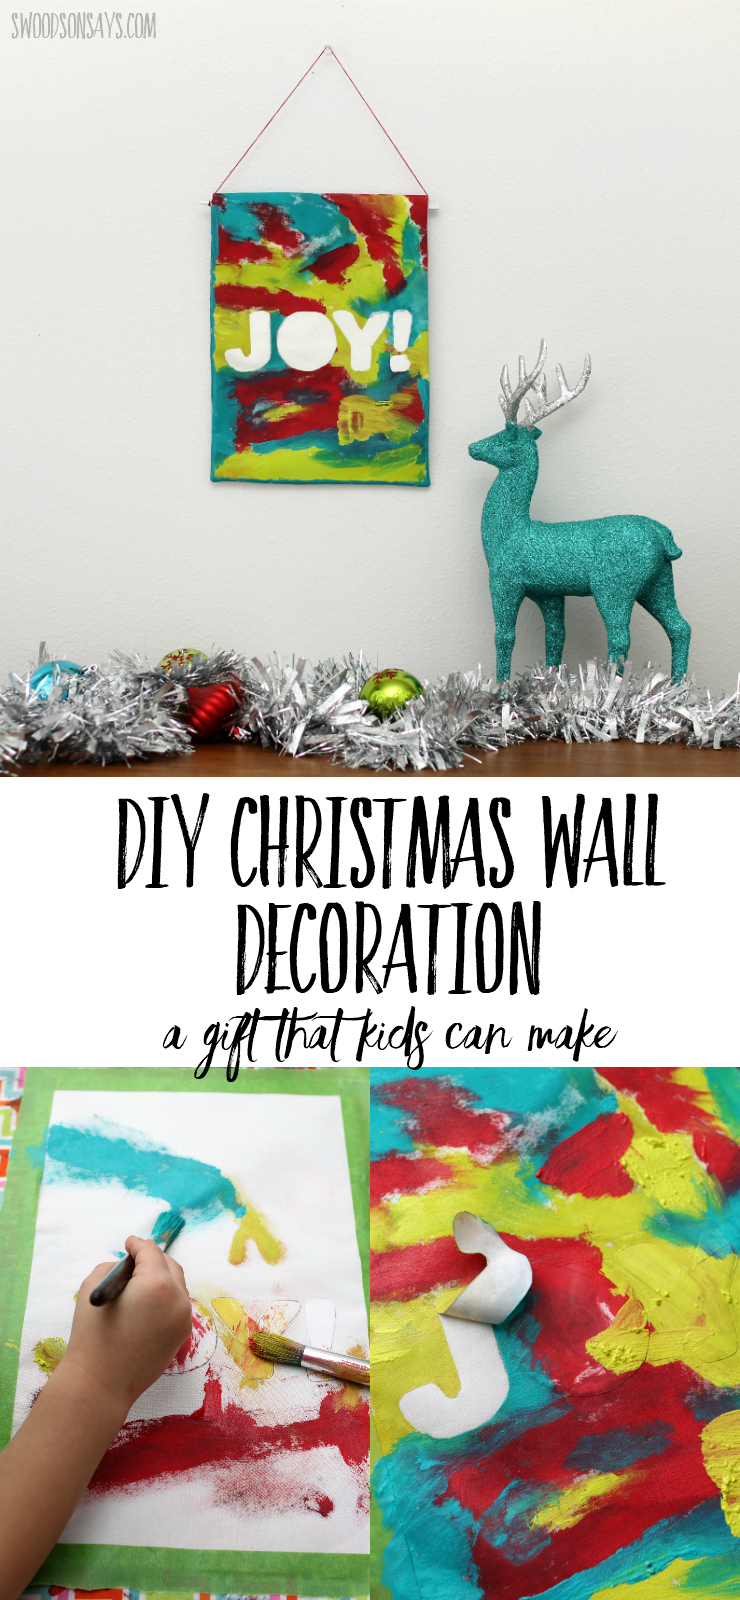 Check out this fun and easy DIY Christmas wall decoration that you can make with your kids! They will love painting the design and older kids can easily sew it as well. Perfect Christmas gift that kids can make and be proud of! #giftskidscanmake #diychristmasgift